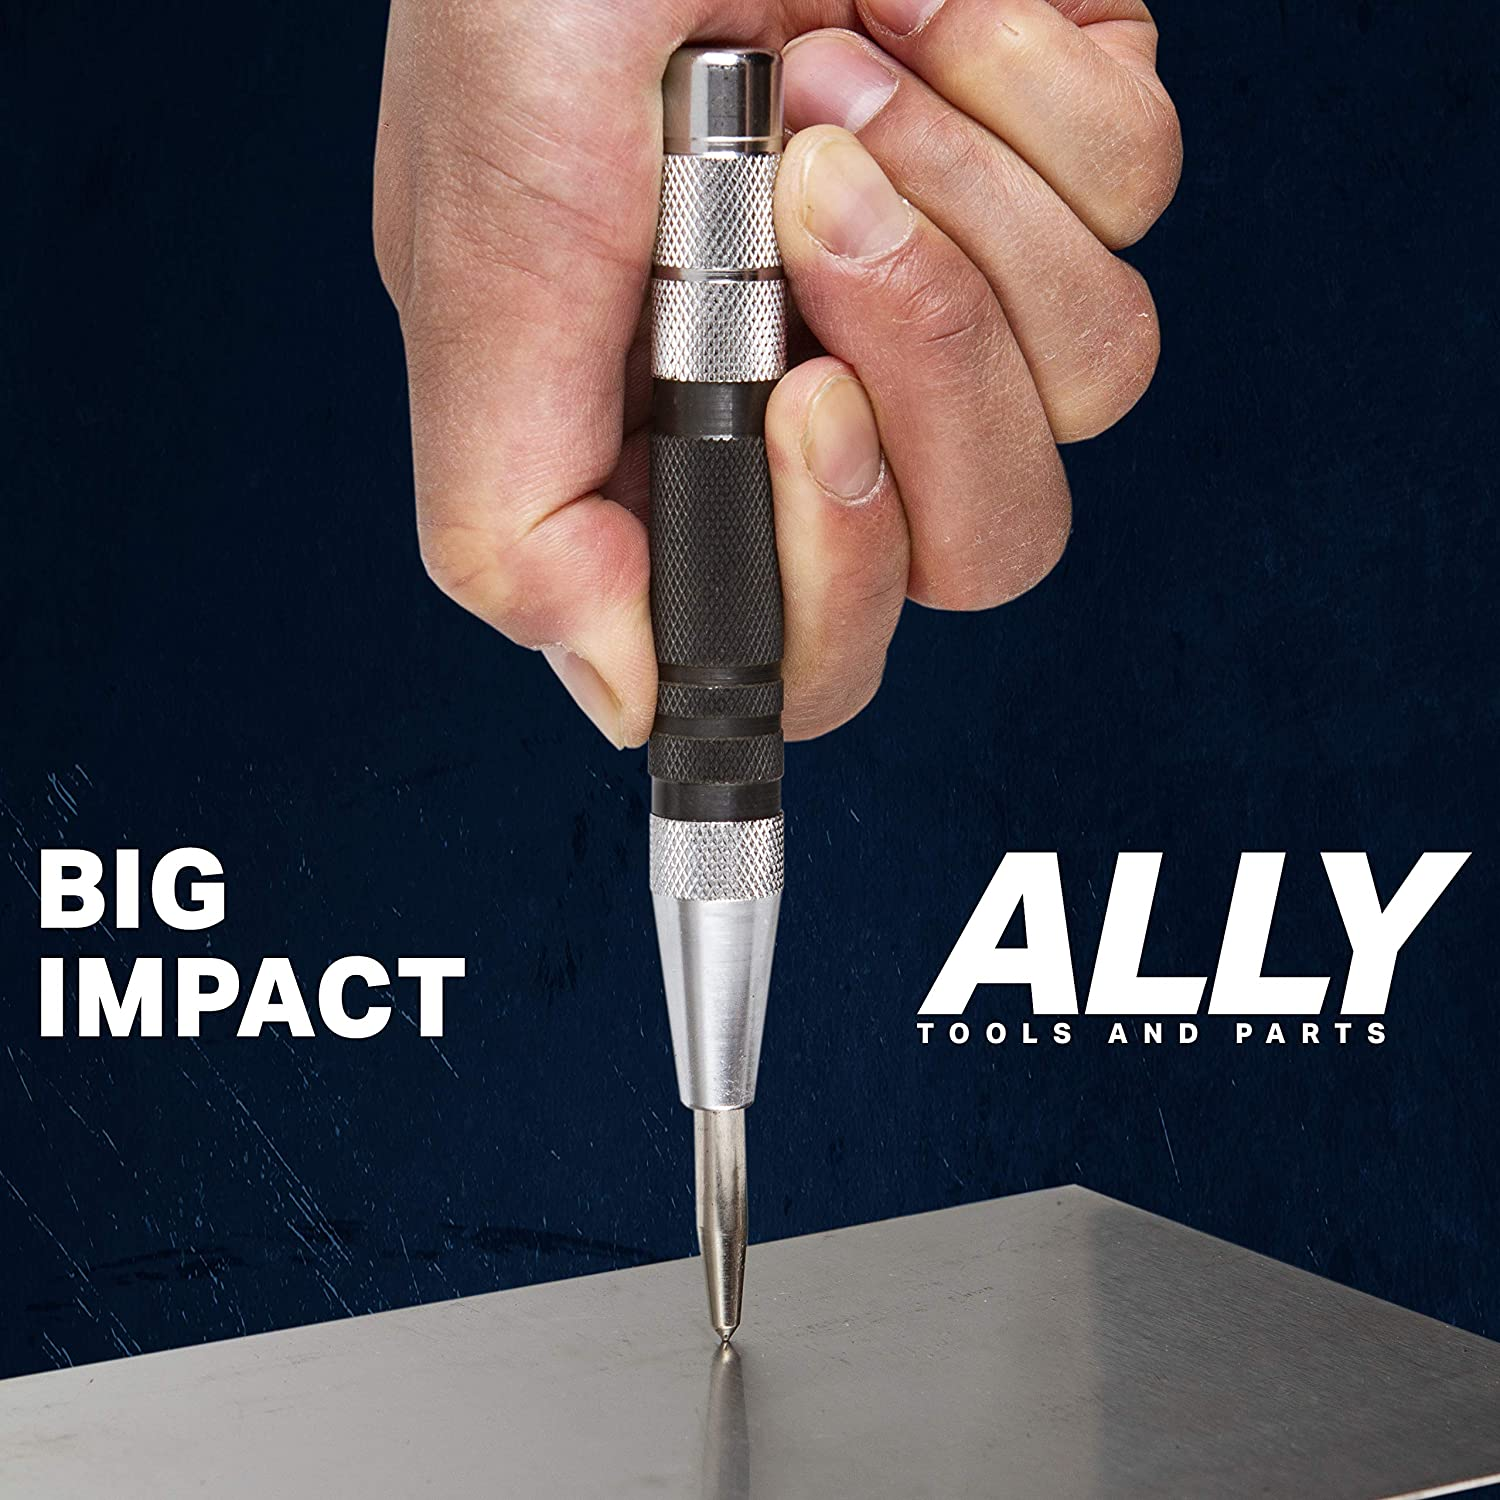 ALLY Tools and Parts 3 PC SET of 6 Inch Heavy Duty Automatic Center Punch Set for Wood Glass Metal and Marble Plastic